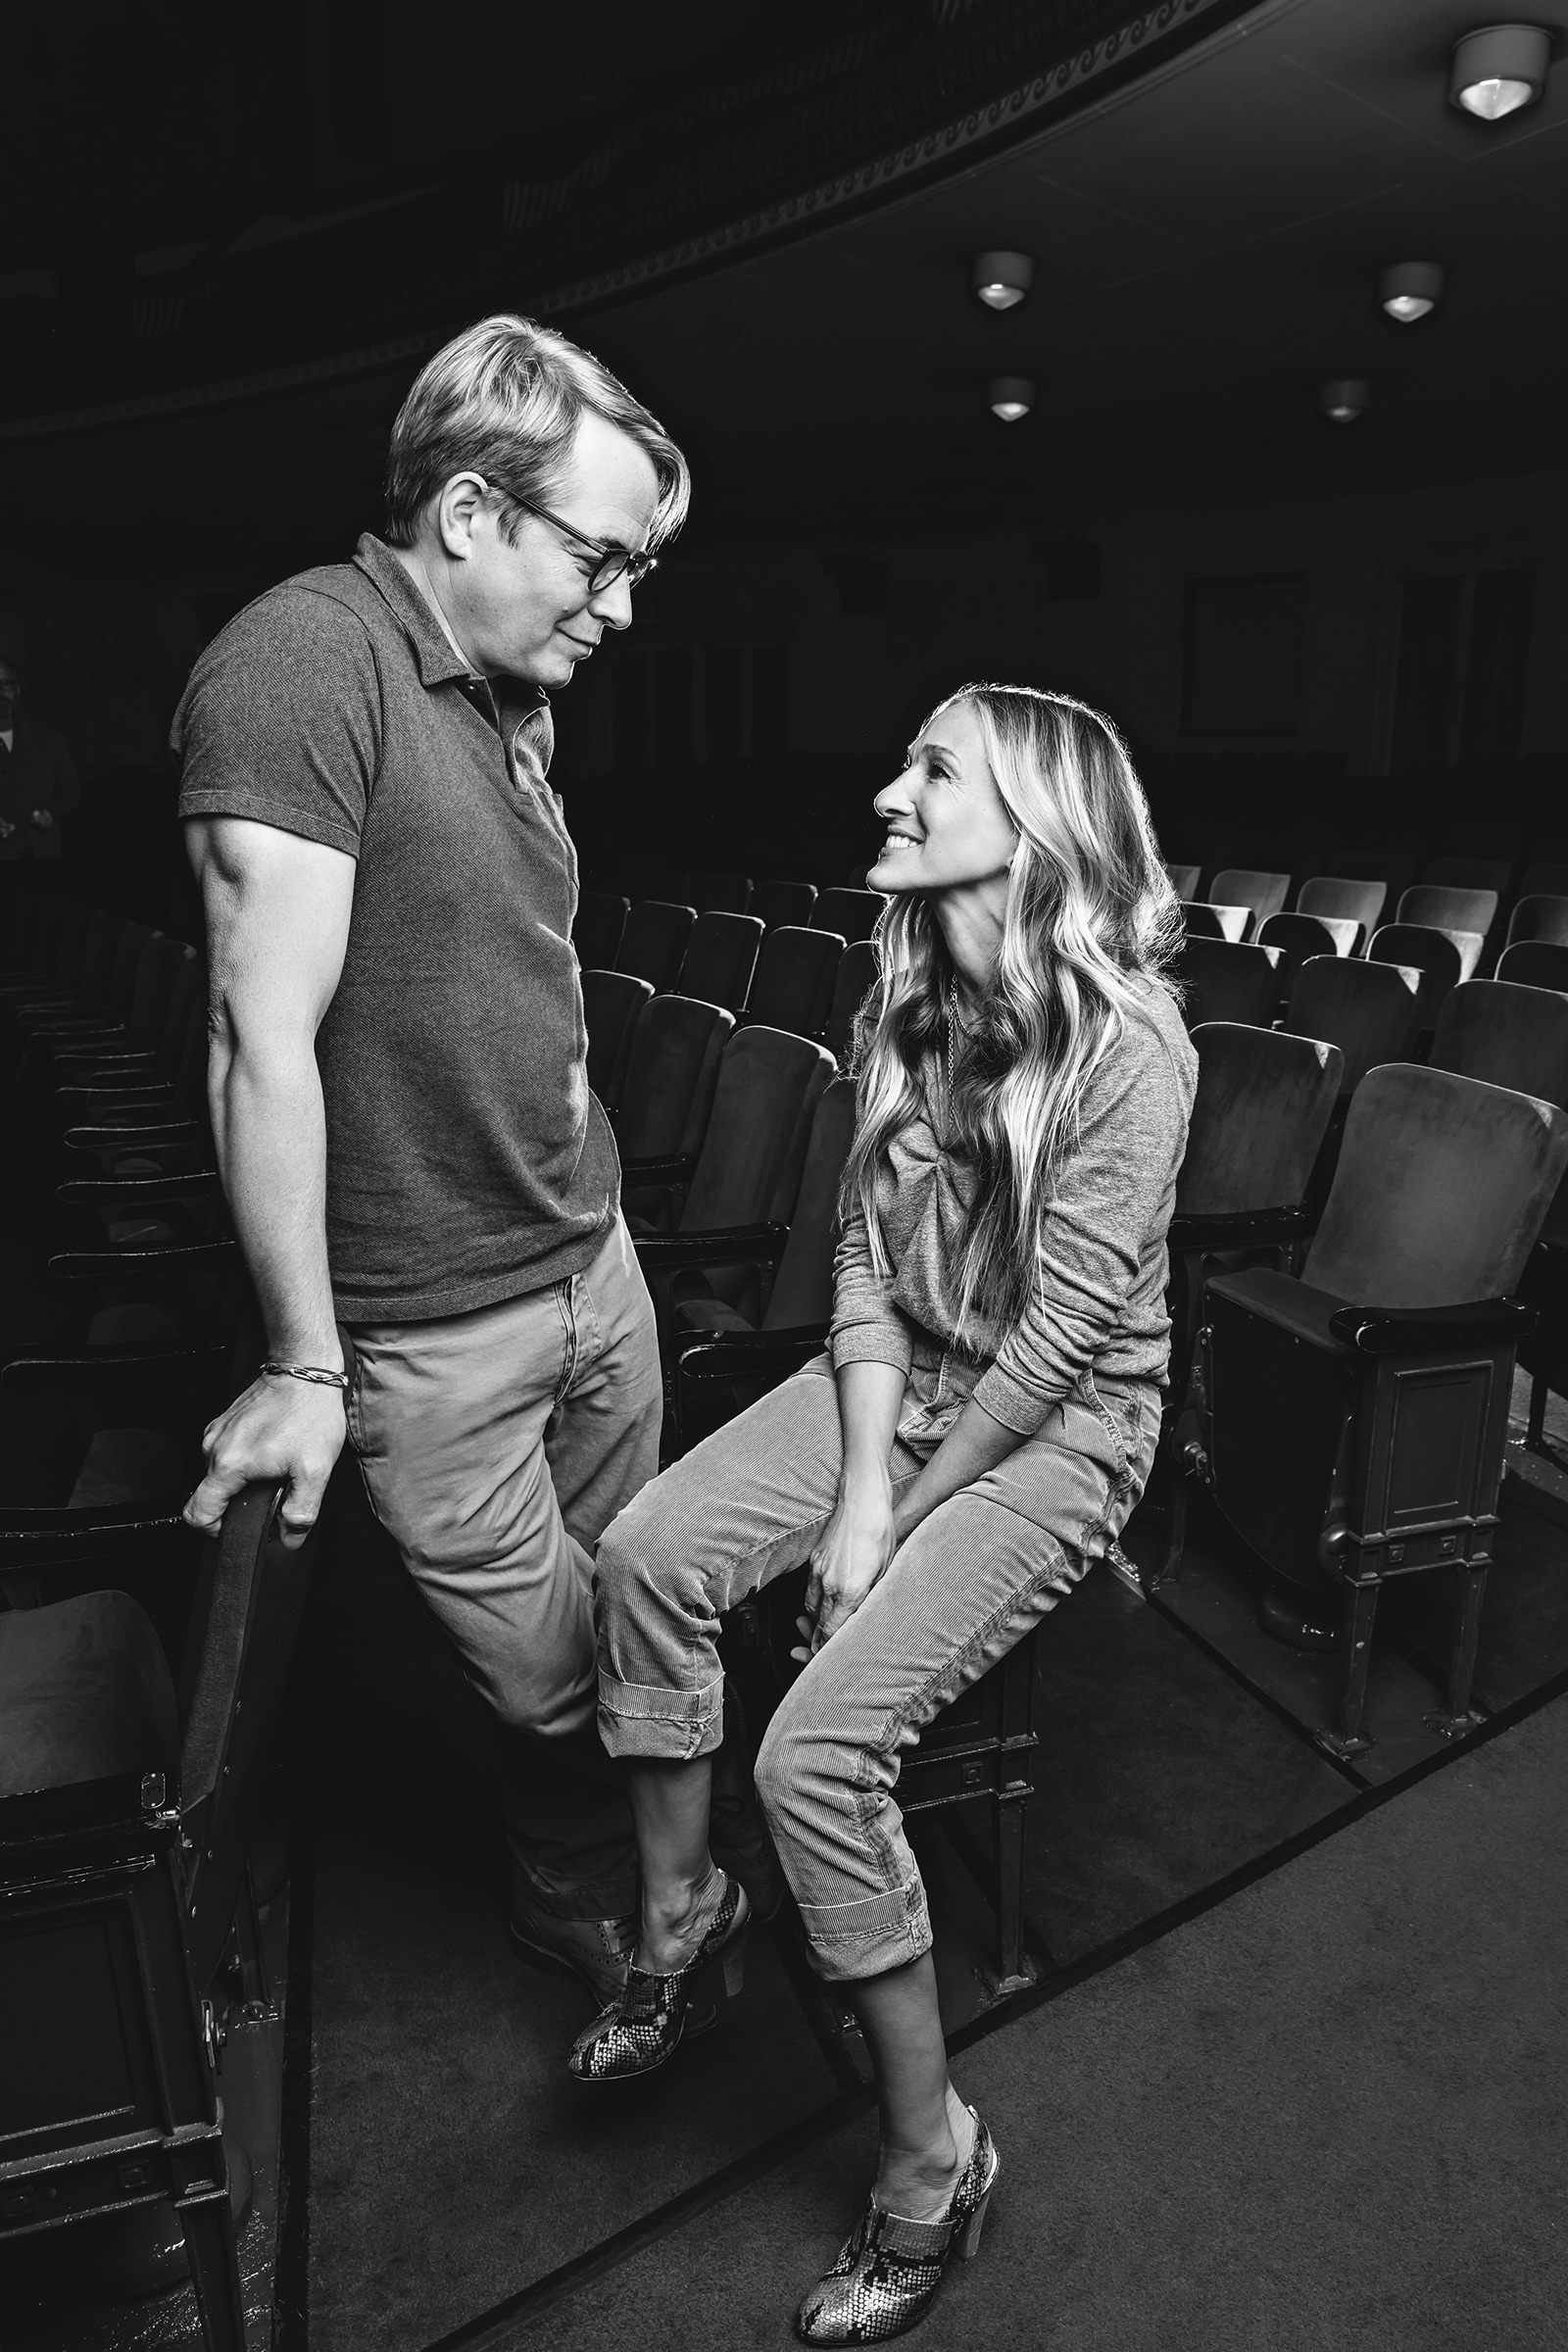 Matthew_Broderick_and_Sarah_Jessica_Parker_Photo_by_Little_Fang.jpg